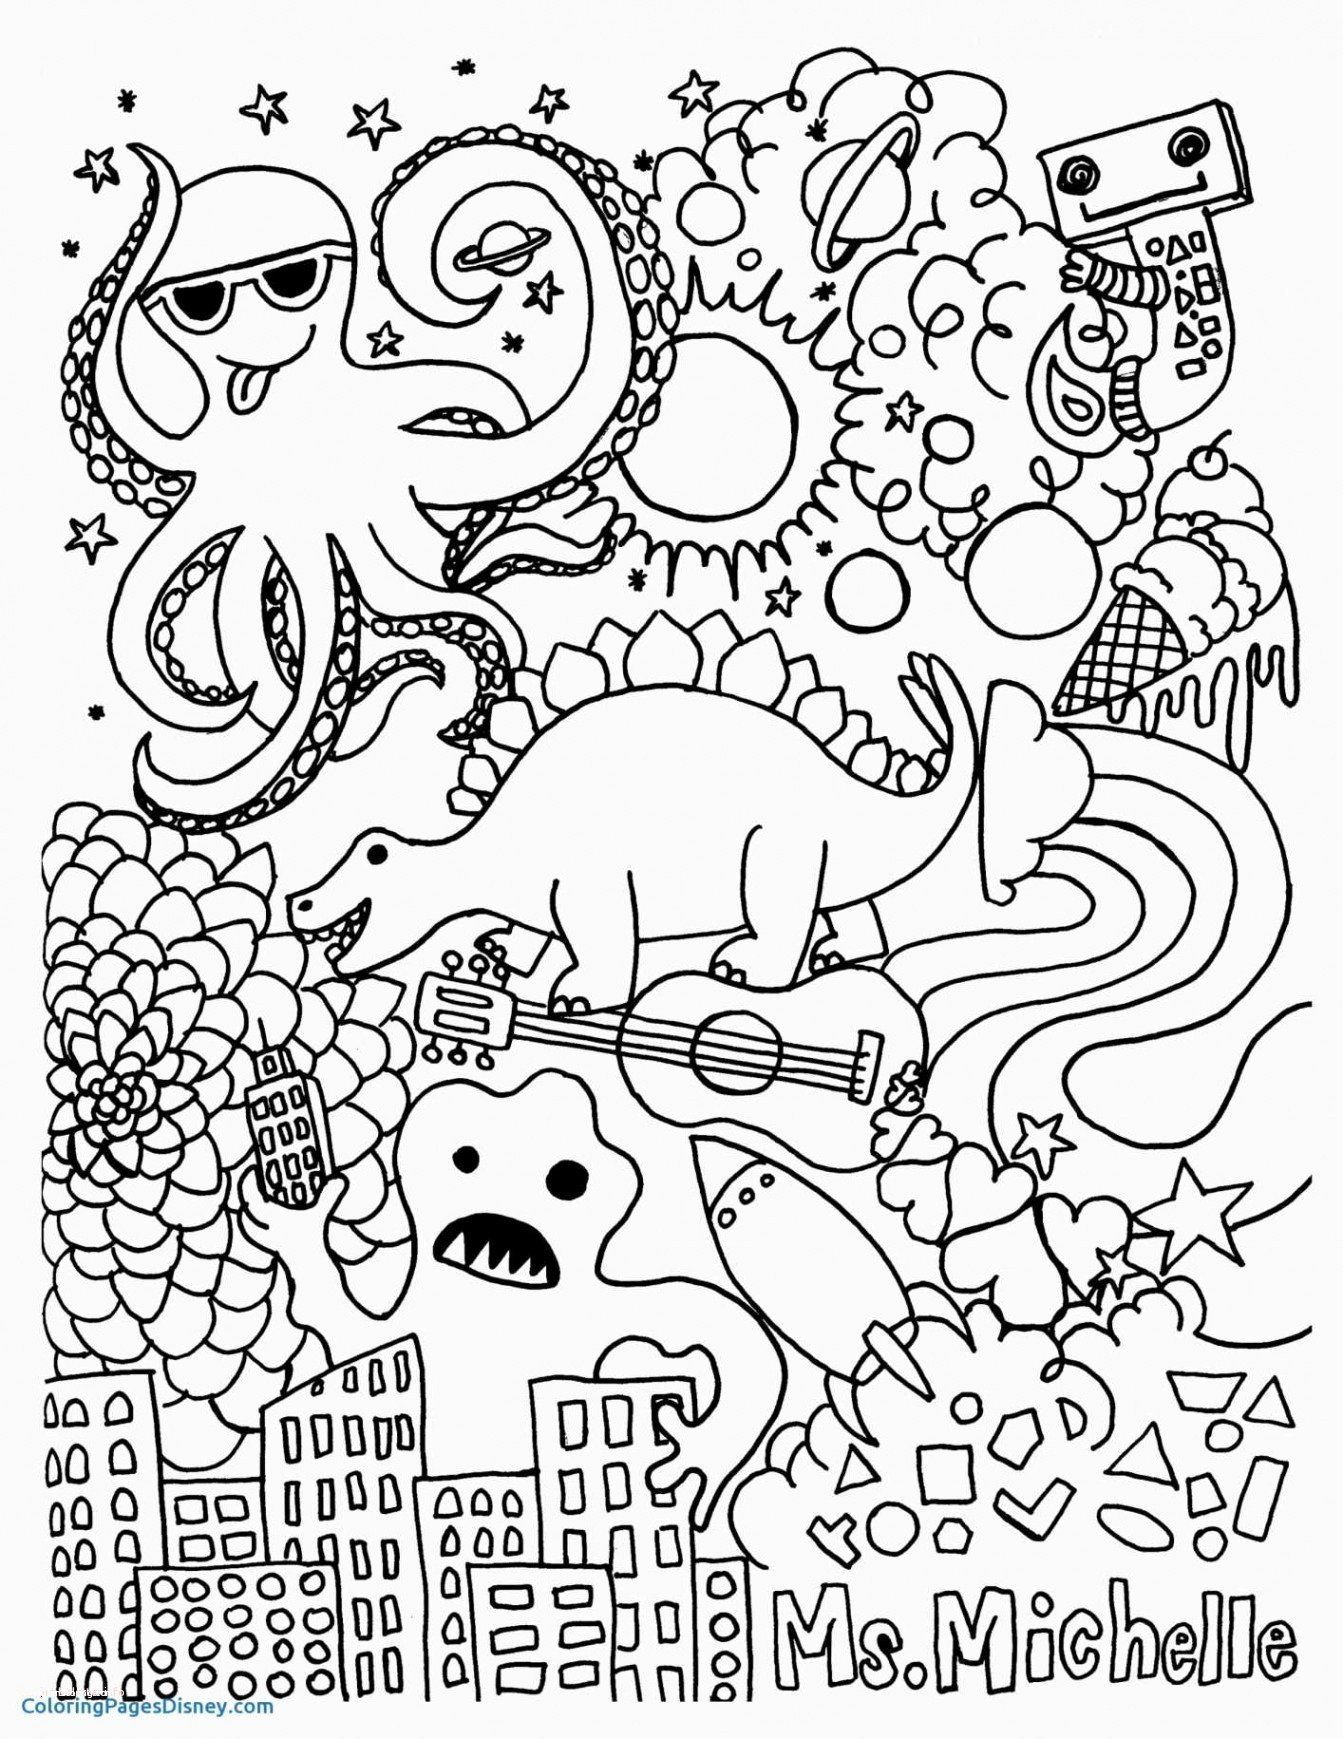 Pin On Iron Man Coloring Pages